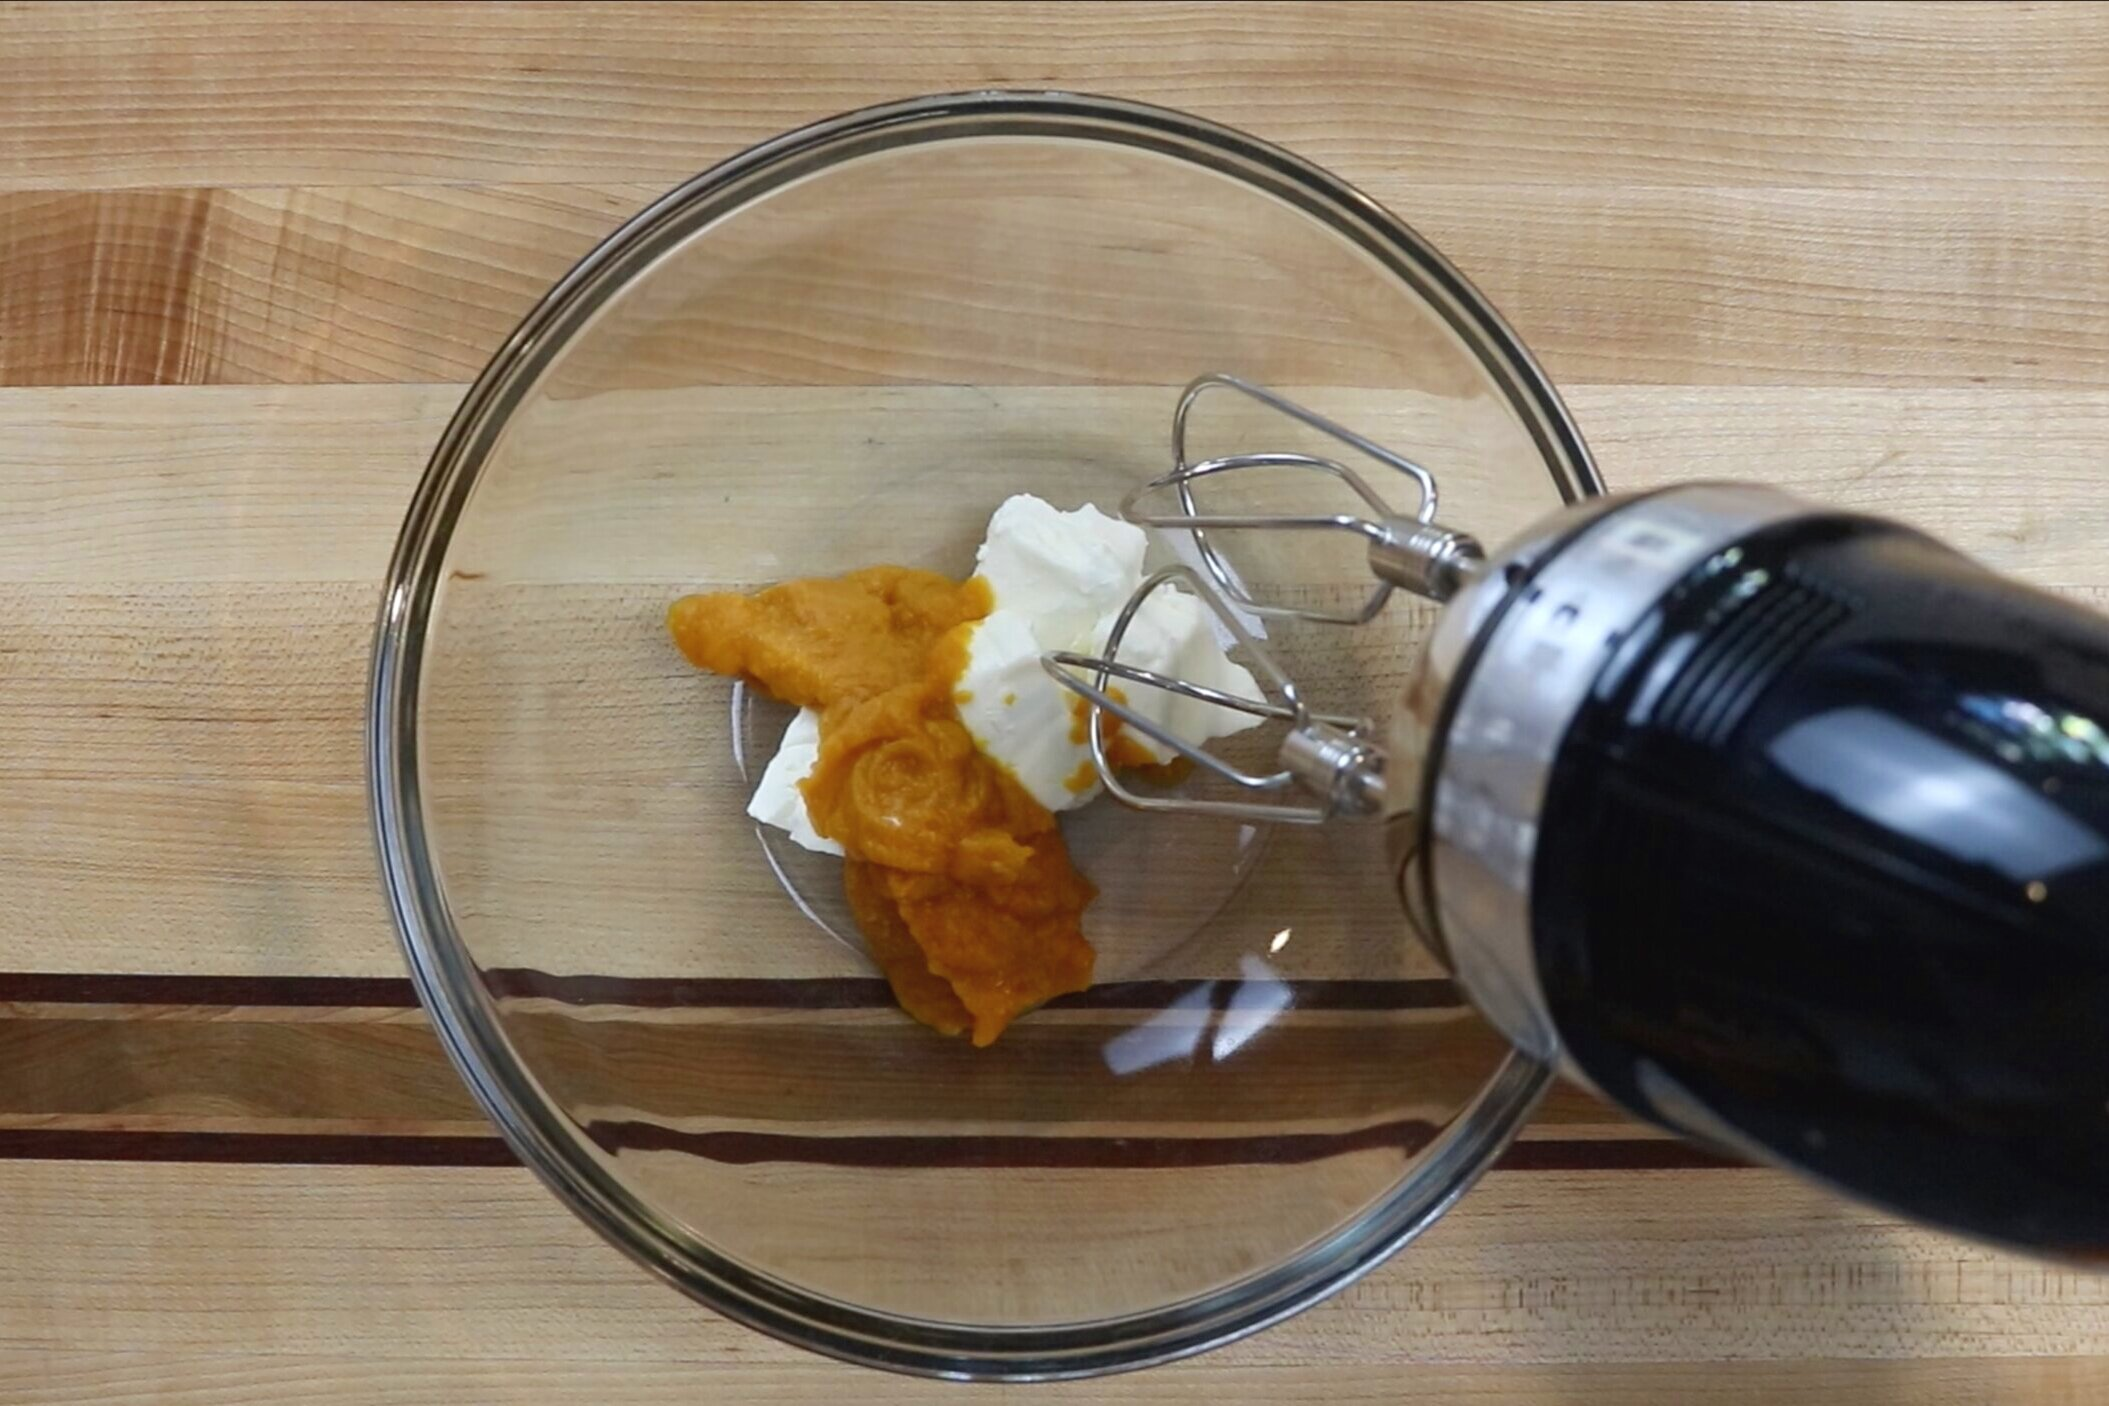 3. In a large bowl, beat together the pumpkin puree and cream cheese until smooth. -